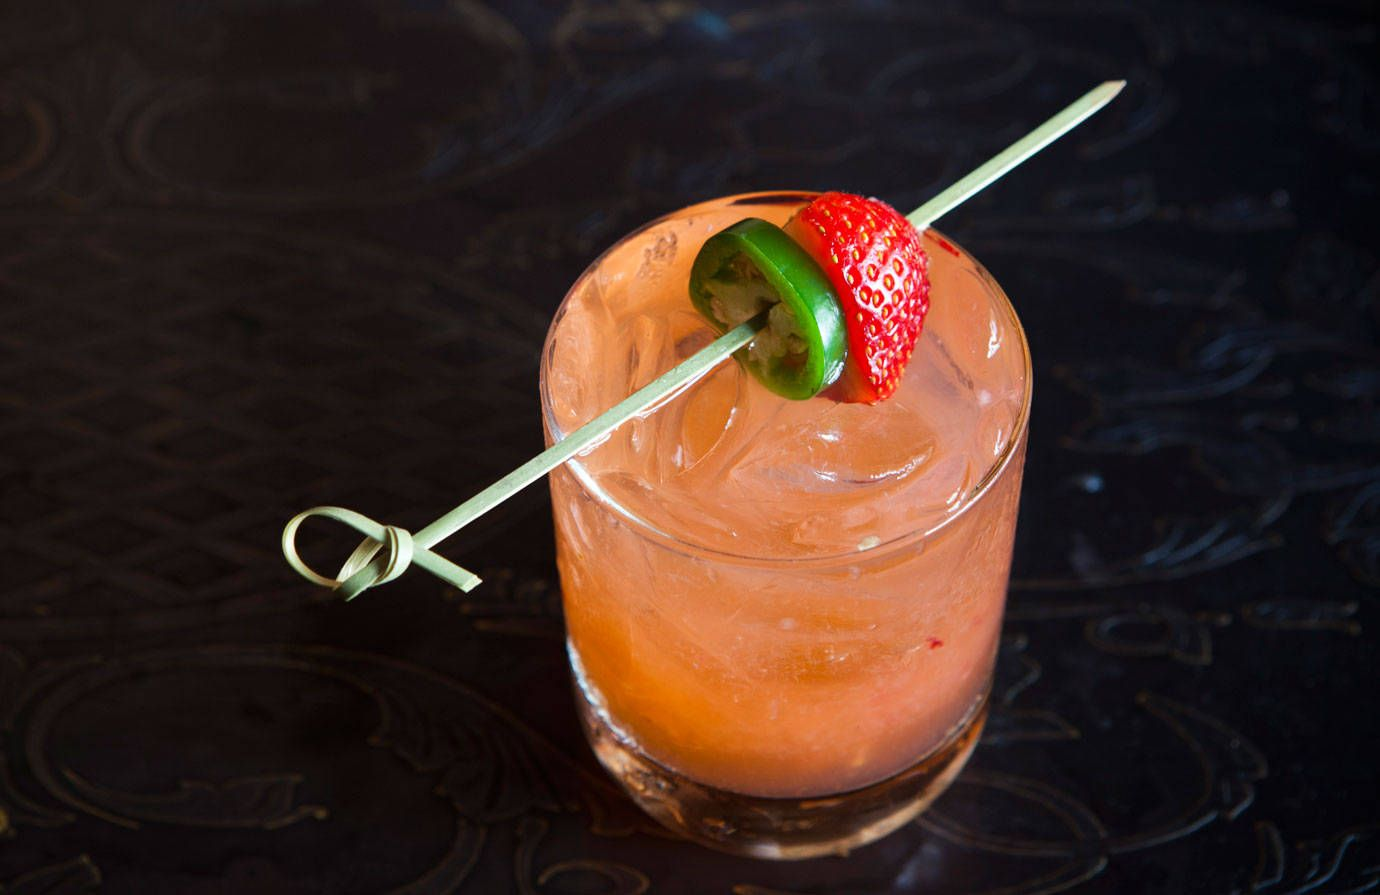 Easy cocktails to make with shaker